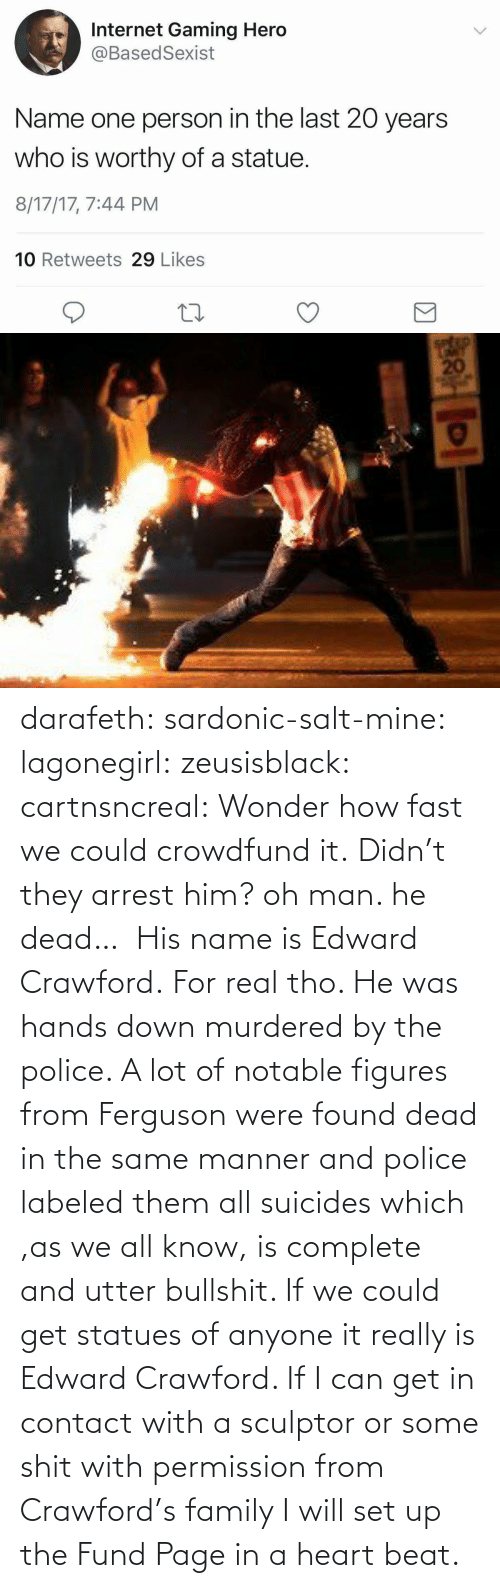 A Lot Of: darafeth: sardonic-salt-mine:  lagonegirl:  zeusisblack:  cartnsncreal:   Wonder how fast we could crowdfund it.    Didn't they arrest him?  oh man. he dead…   His name is Edward Crawford.   For real tho. He was hands down murdered by the police. A lot of notable figures from Ferguson were found dead in the same manner and police labeled them all suicides which ,as we all know, is complete and utter bullshit.  If we could get statues of anyone it really is Edward Crawford. If I can get in contact with a sculptor or some shit with permission from Crawford's family I will set up the Fund Page in a heart beat.